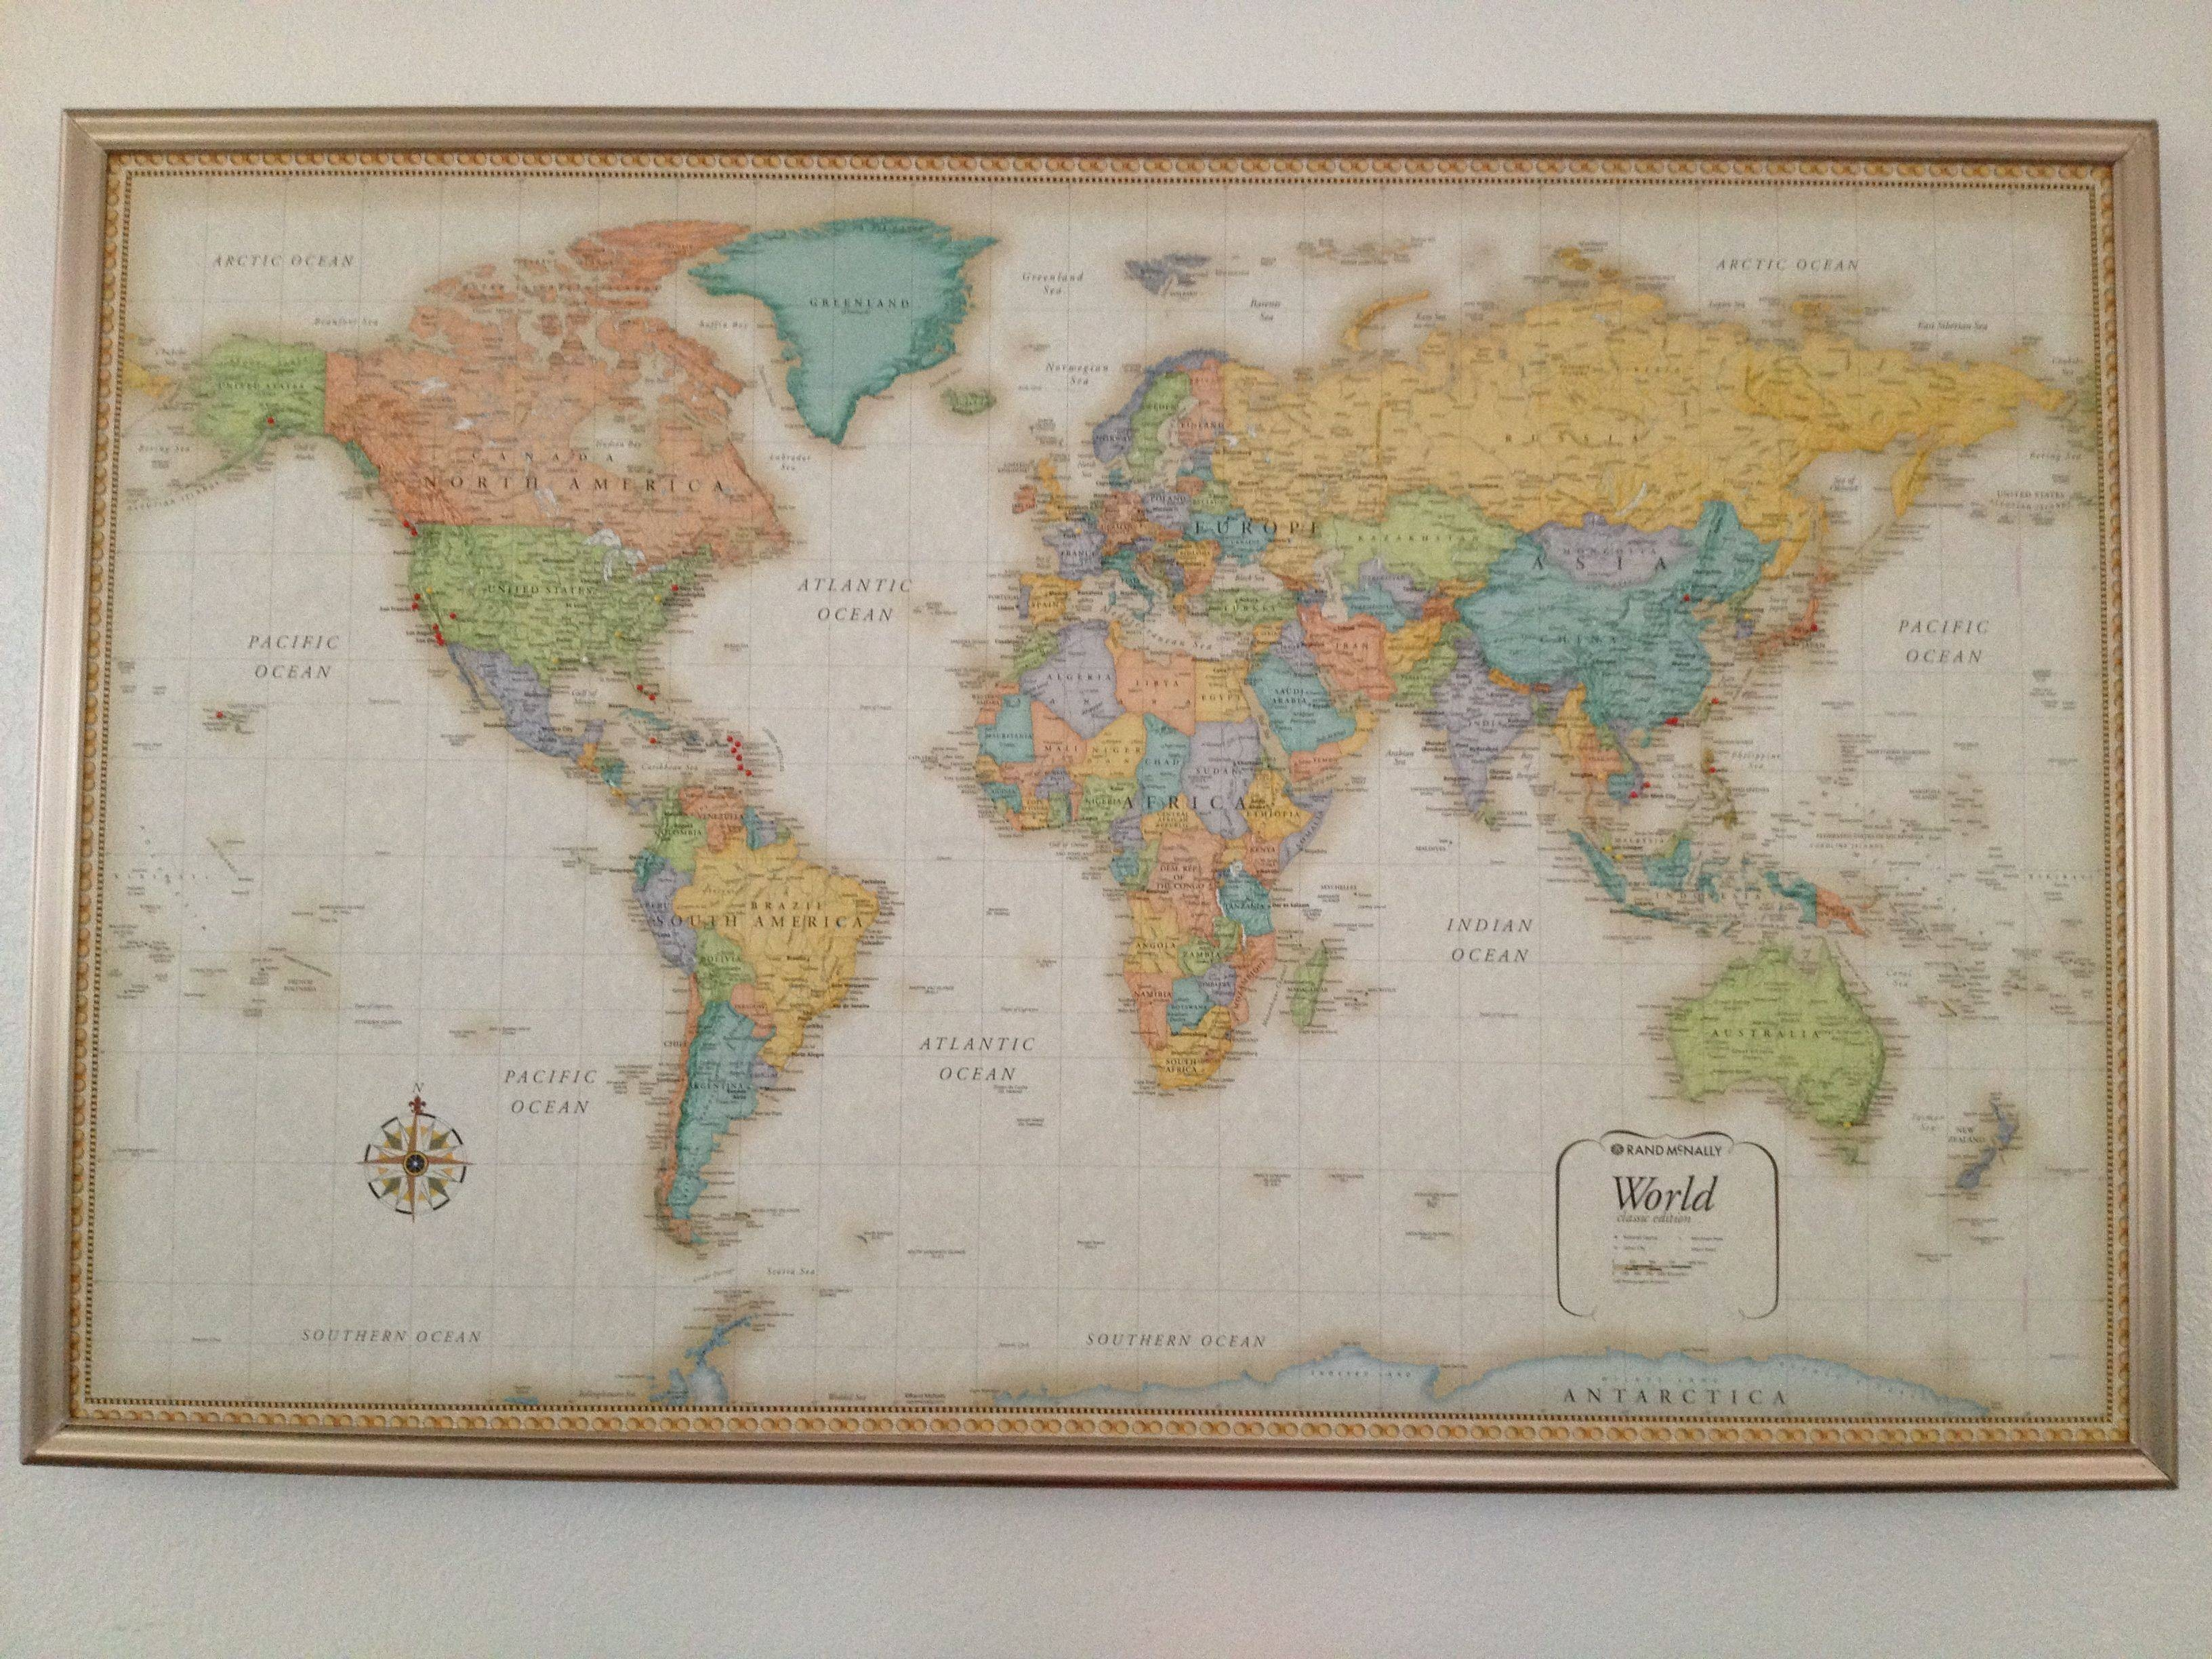 Diy Framed World Map With Pins | Hamonious Pertaining To Current Framed World Map Wall Art (View 5 of 20)